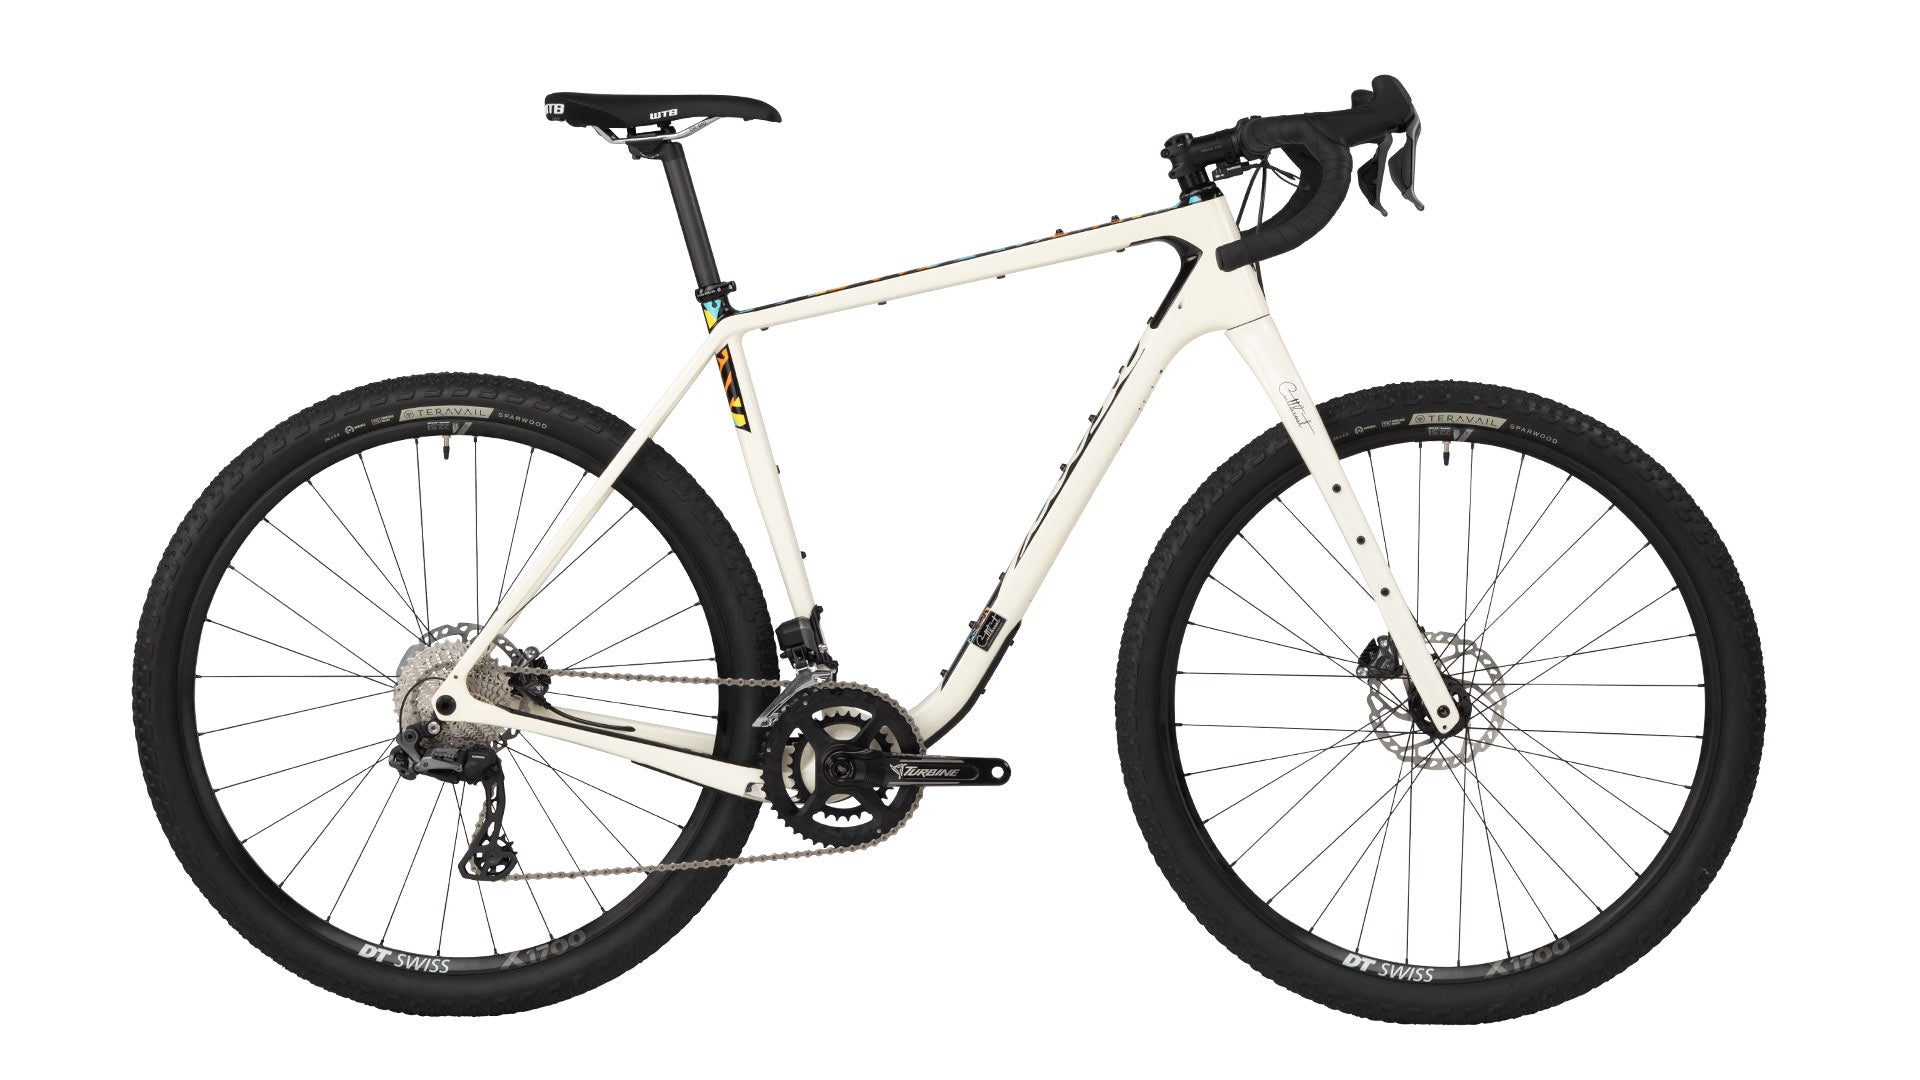 Salsa Cutthroat GRX 810 Di2 (Coming Soon)